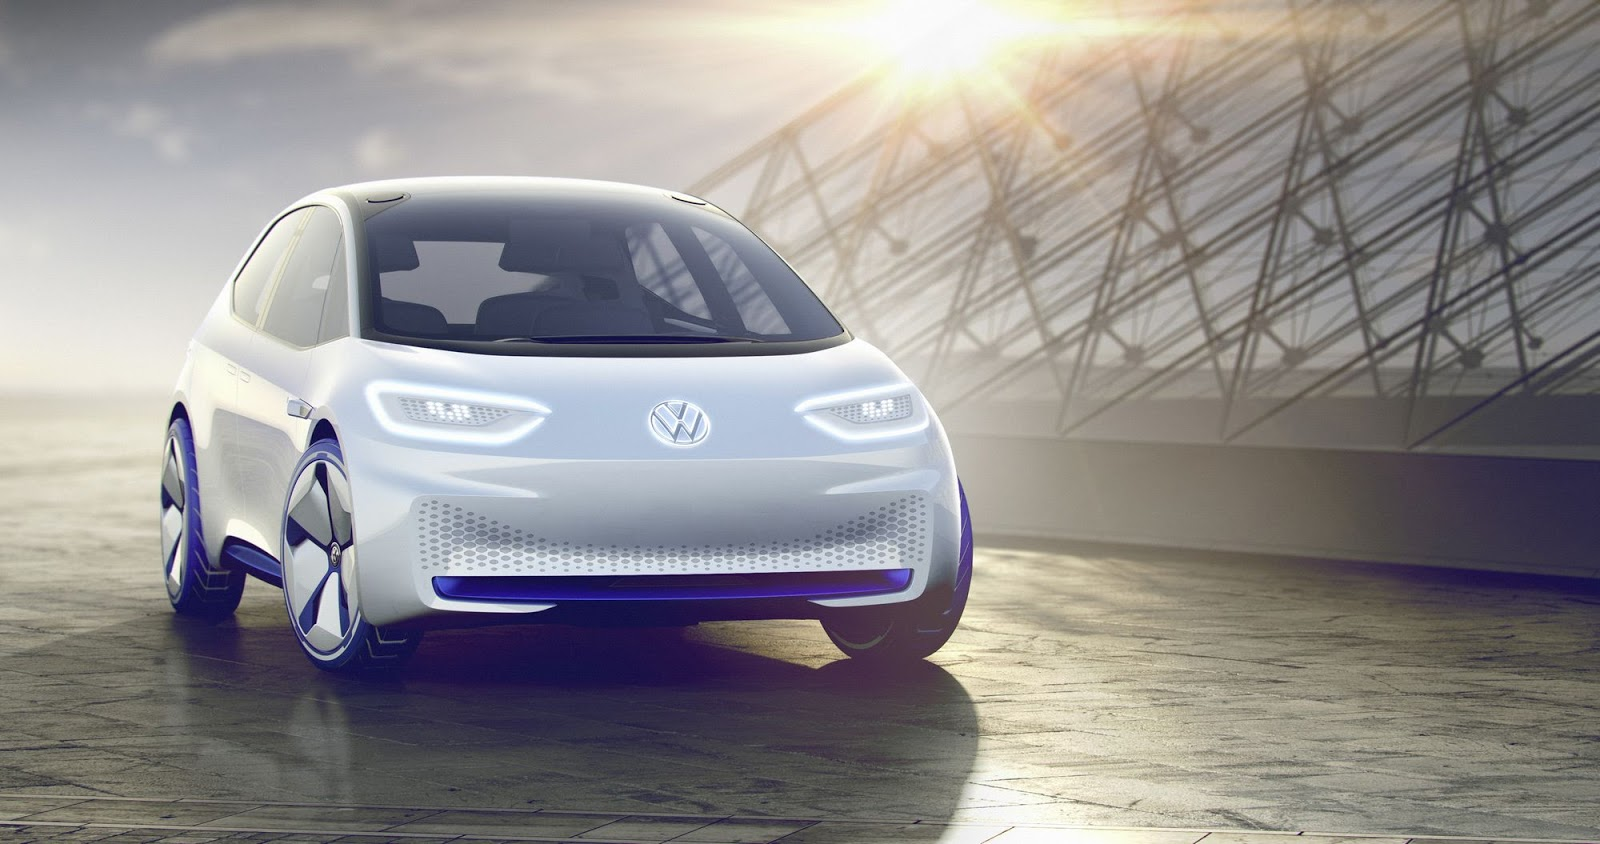 """volkswagen ham vong tro thanh """"ke thong tri"""" thi truong xe dien hinh anh 1"""